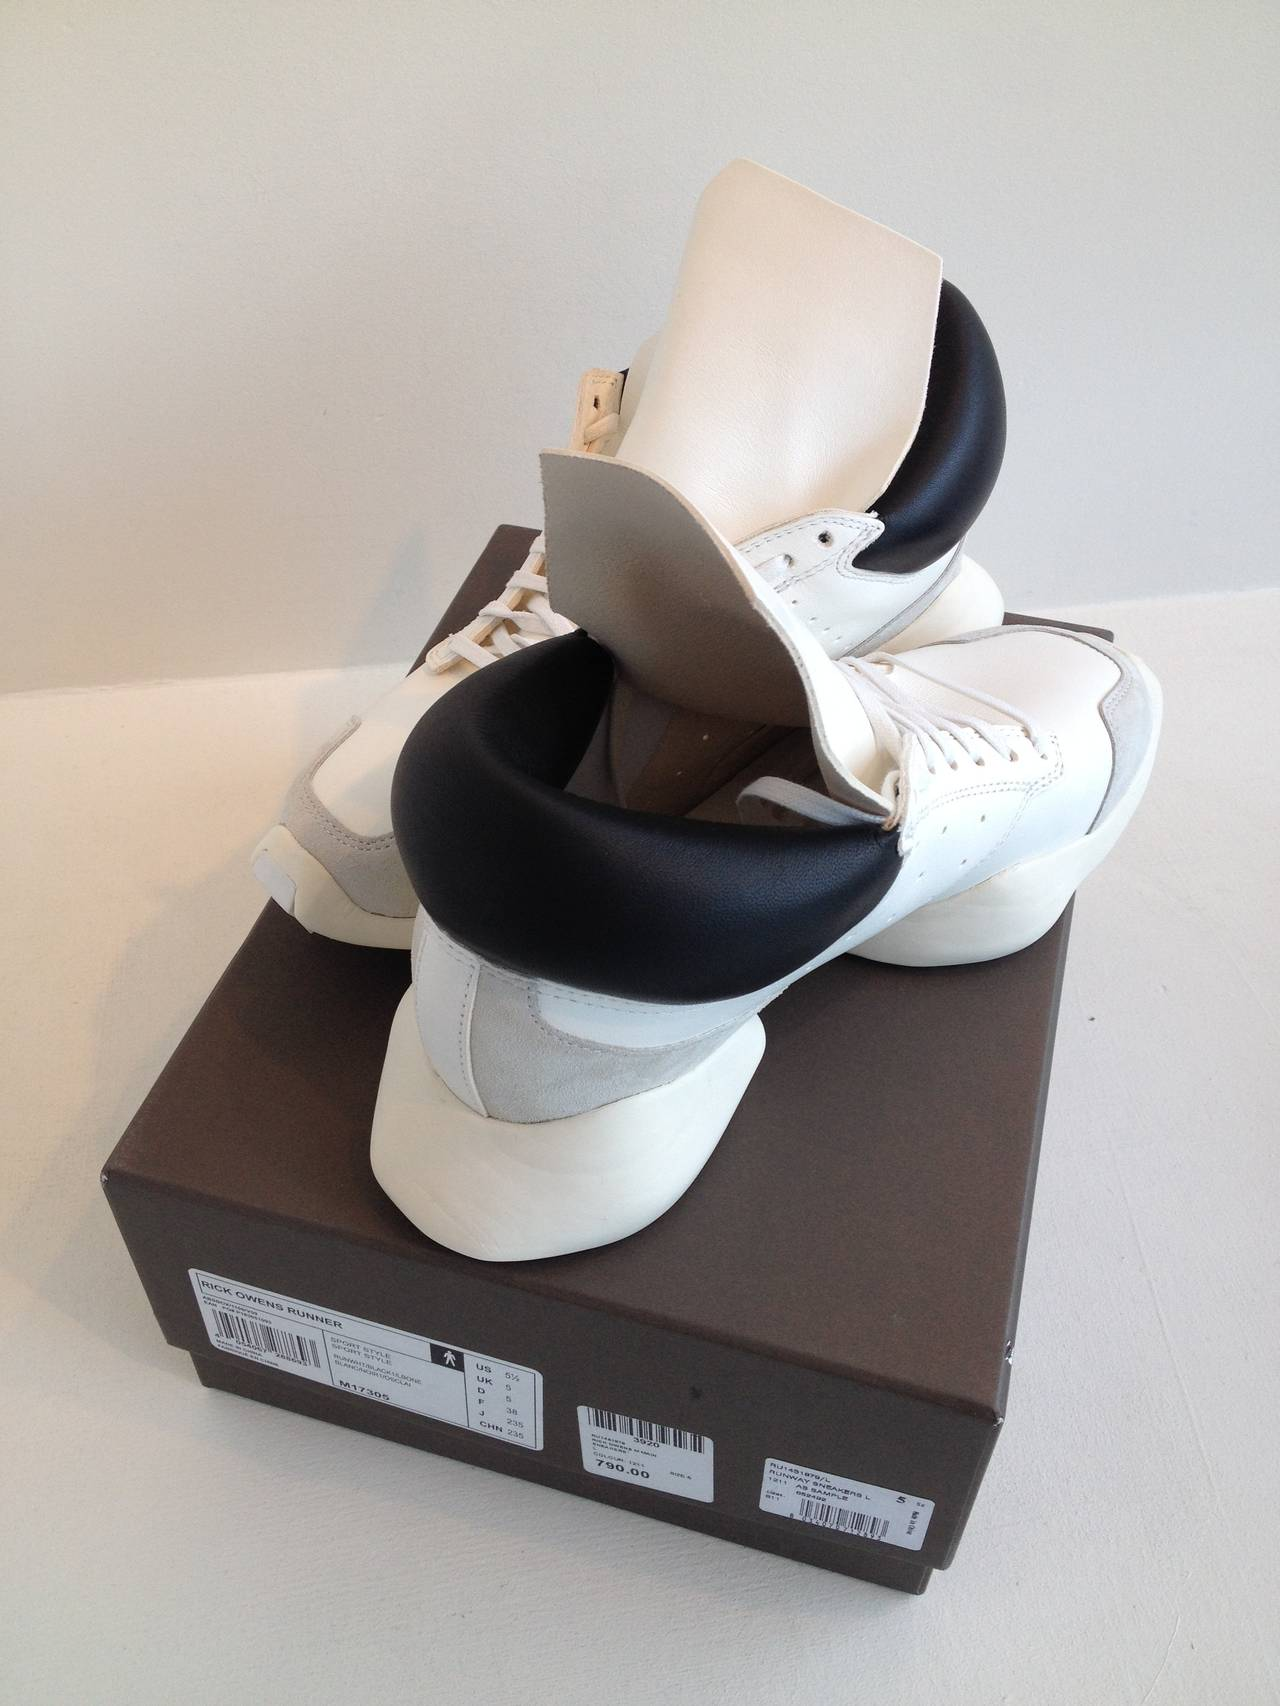 Rick Owens for Adidas White Puffy Sneakers For Sale 3